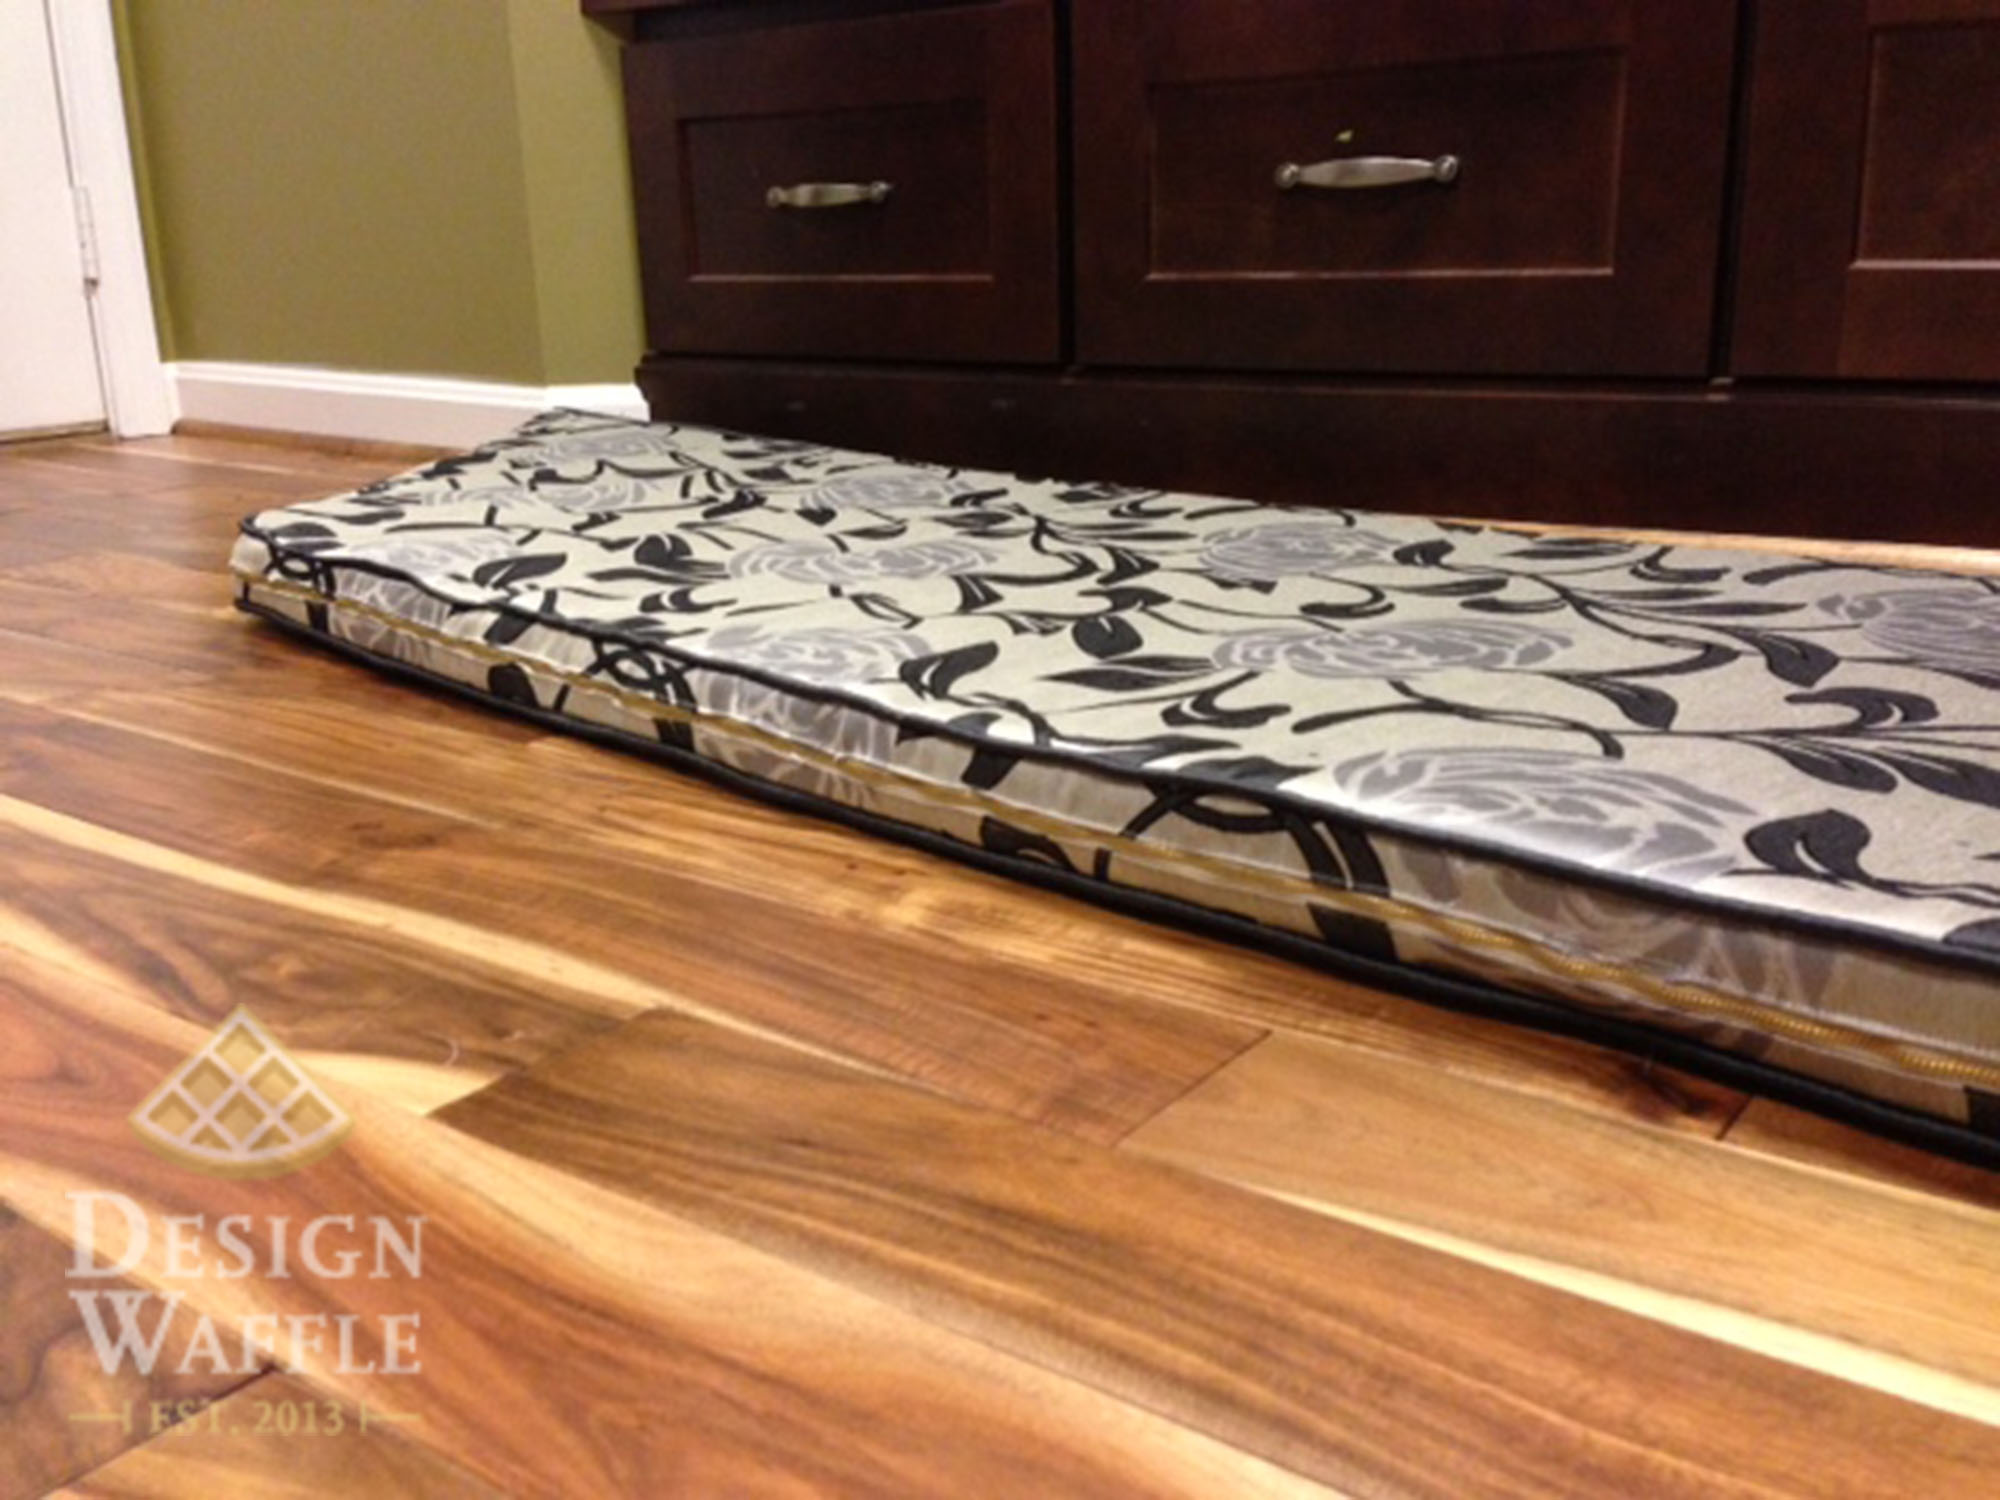 sewing a bay window seat cushion design waffle